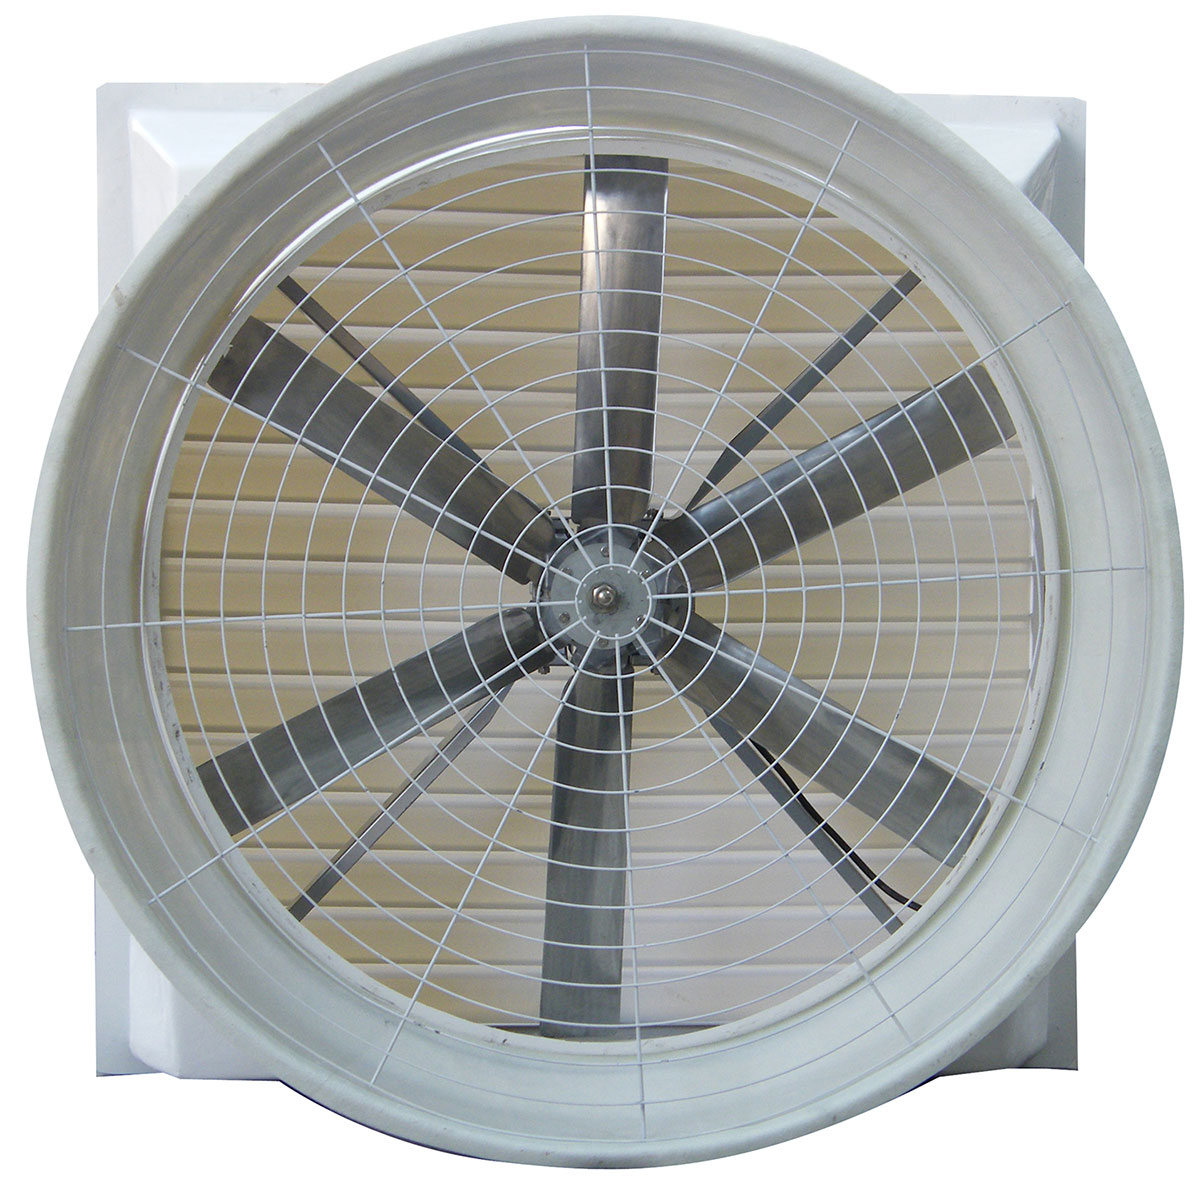 low price 13500 ~ 110000 CMH packaging plant electric ac exhaust fan for workshop